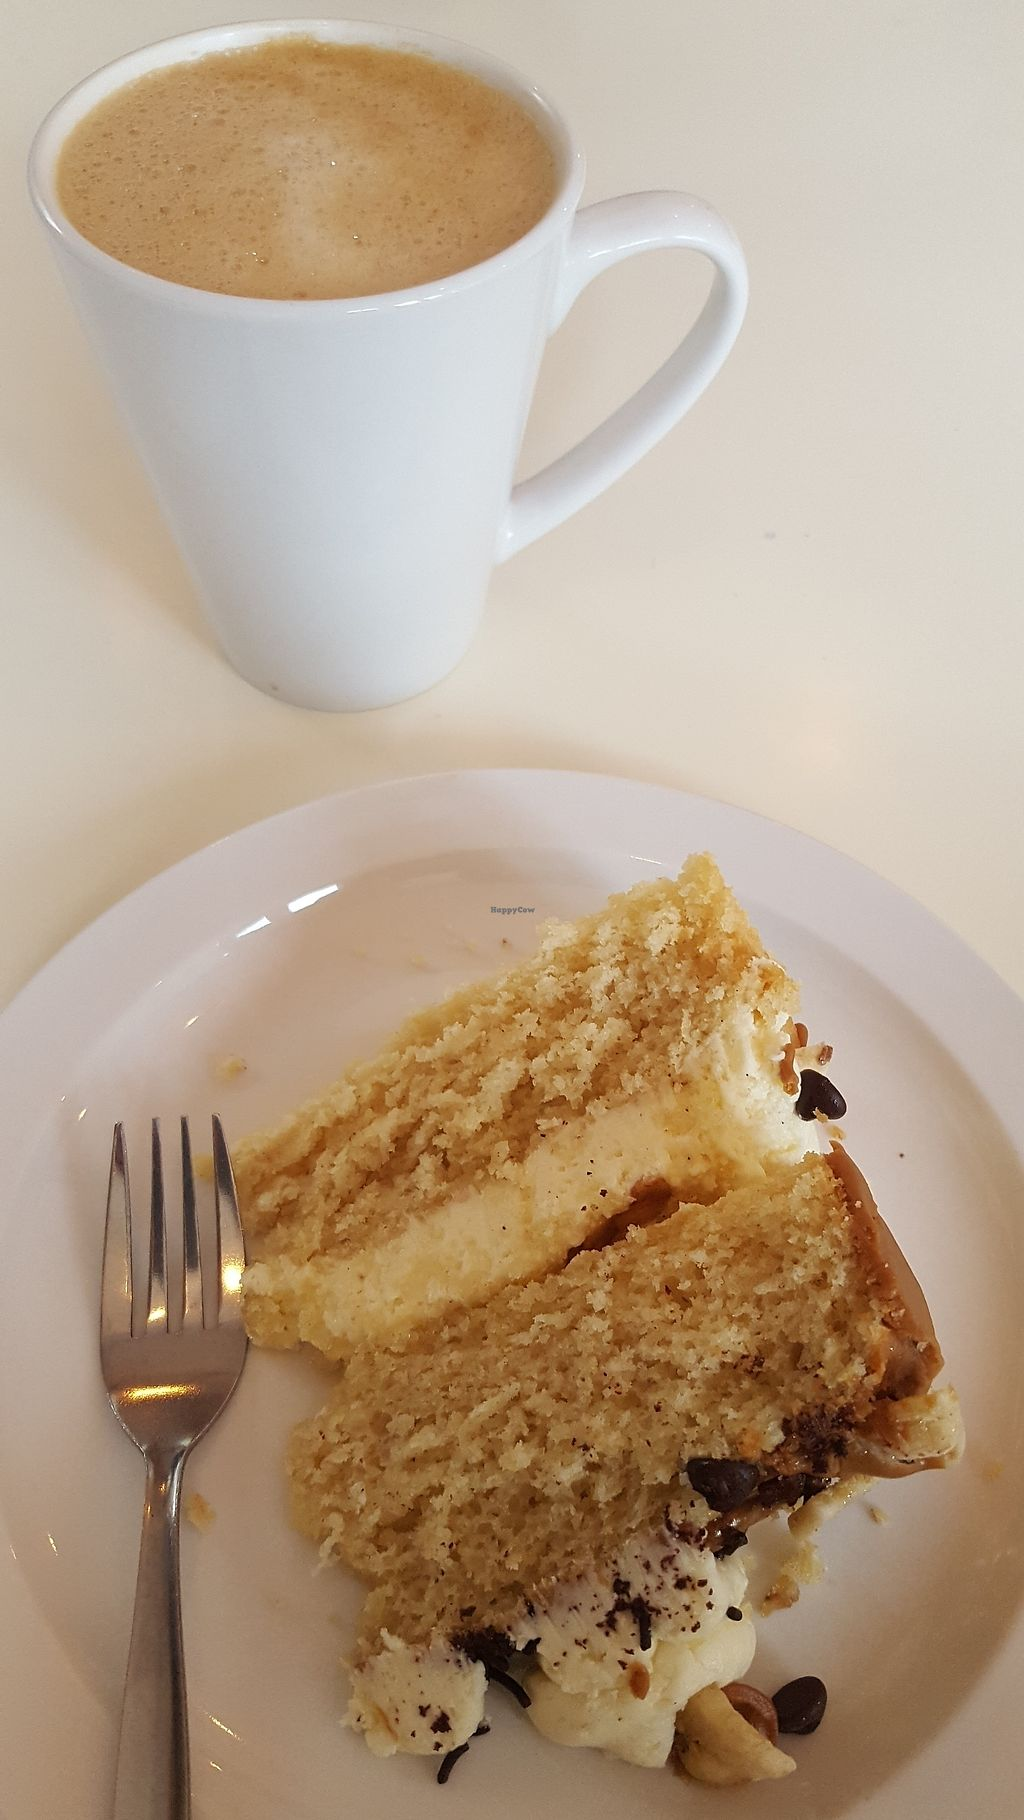 """Photo of The Kind Grind  by <a href=""""/members/profile/VeganAnnaS"""">VeganAnnaS</a> <br/>Banoffee cake and oat latte <br/> January 4, 2018  - <a href='/contact/abuse/image/95003/343023'>Report</a>"""